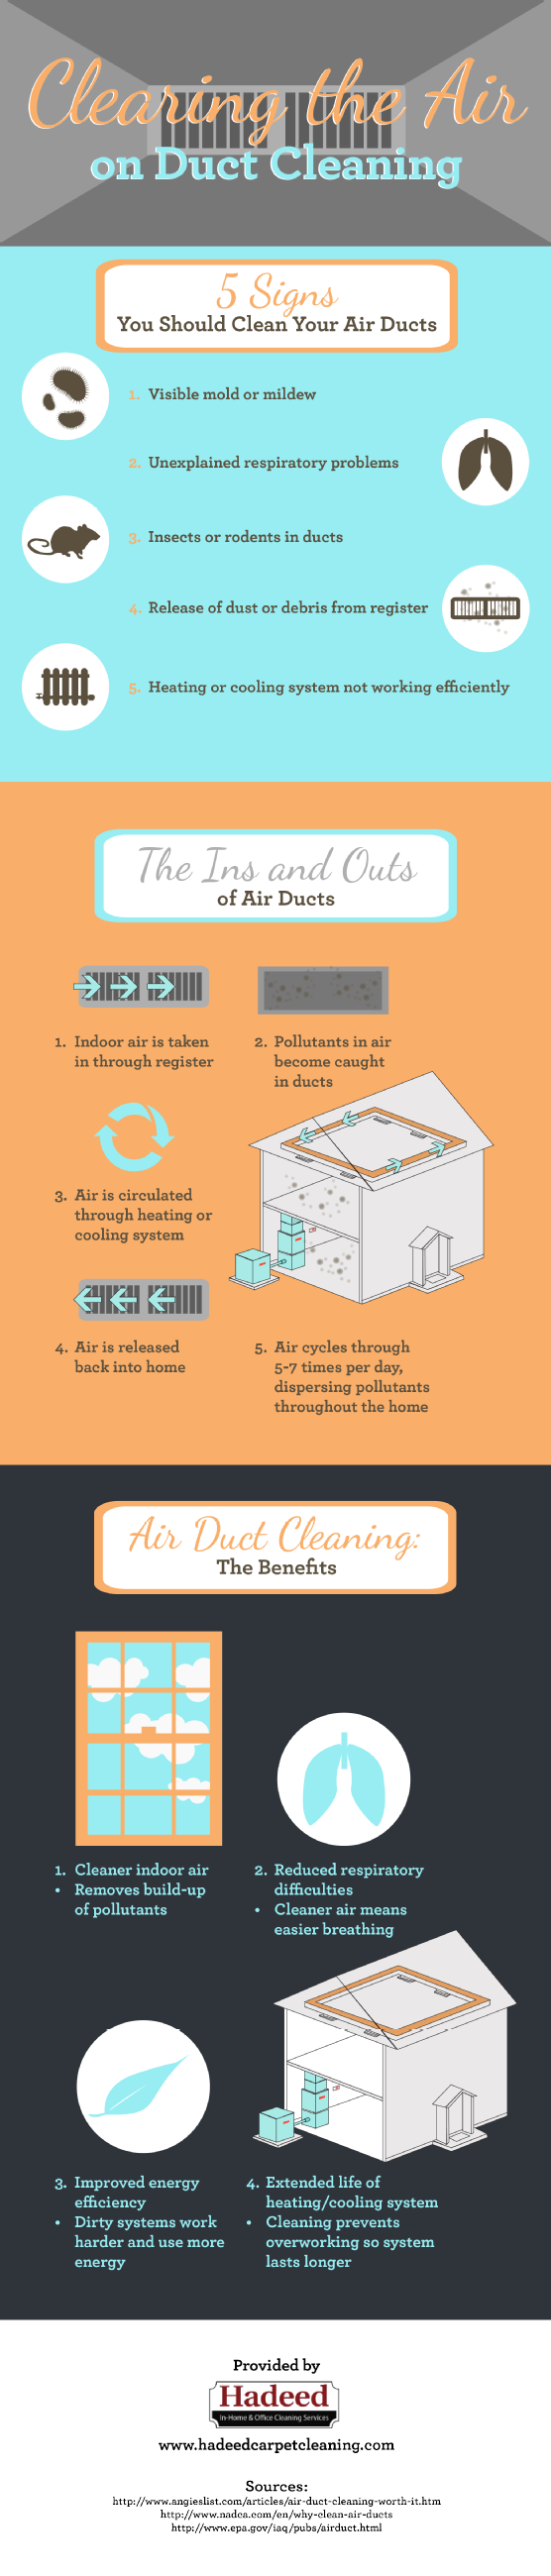 clearing-the-air-on-duct-cleaning_52316c